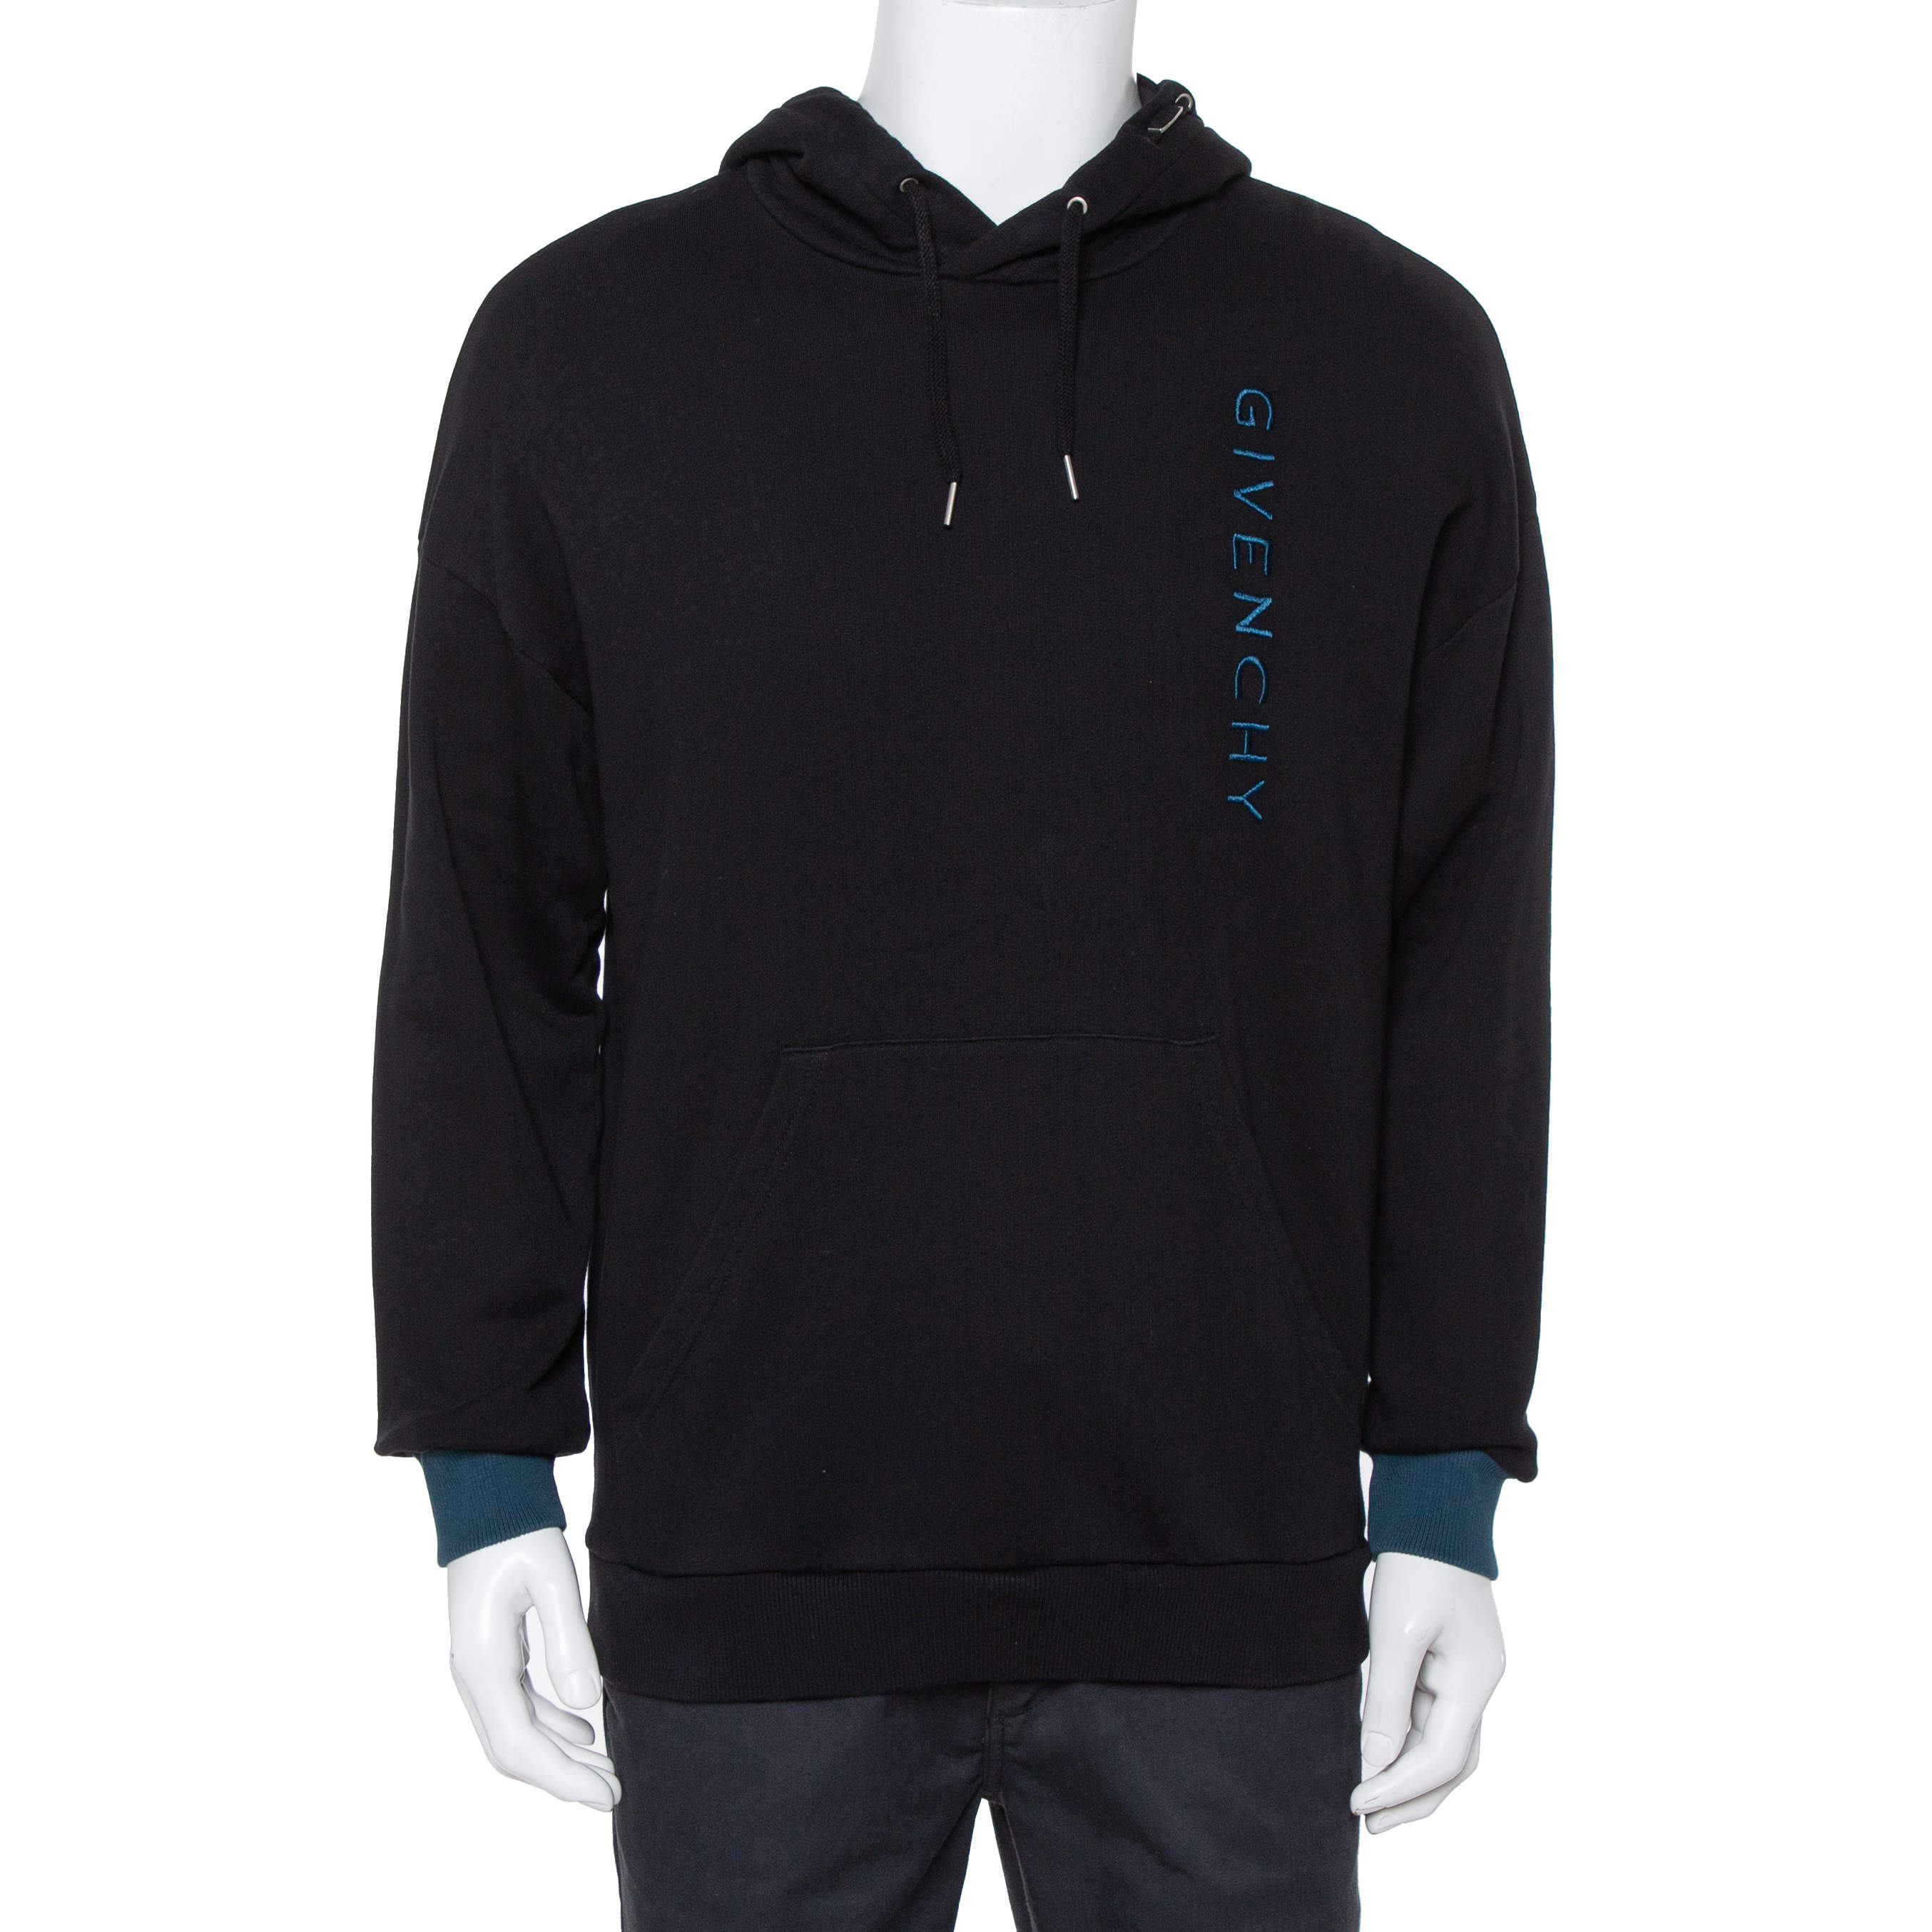 Givenchy Black Cotton Logo Embroidered Contrast Detail Hooded Sweatshirt S